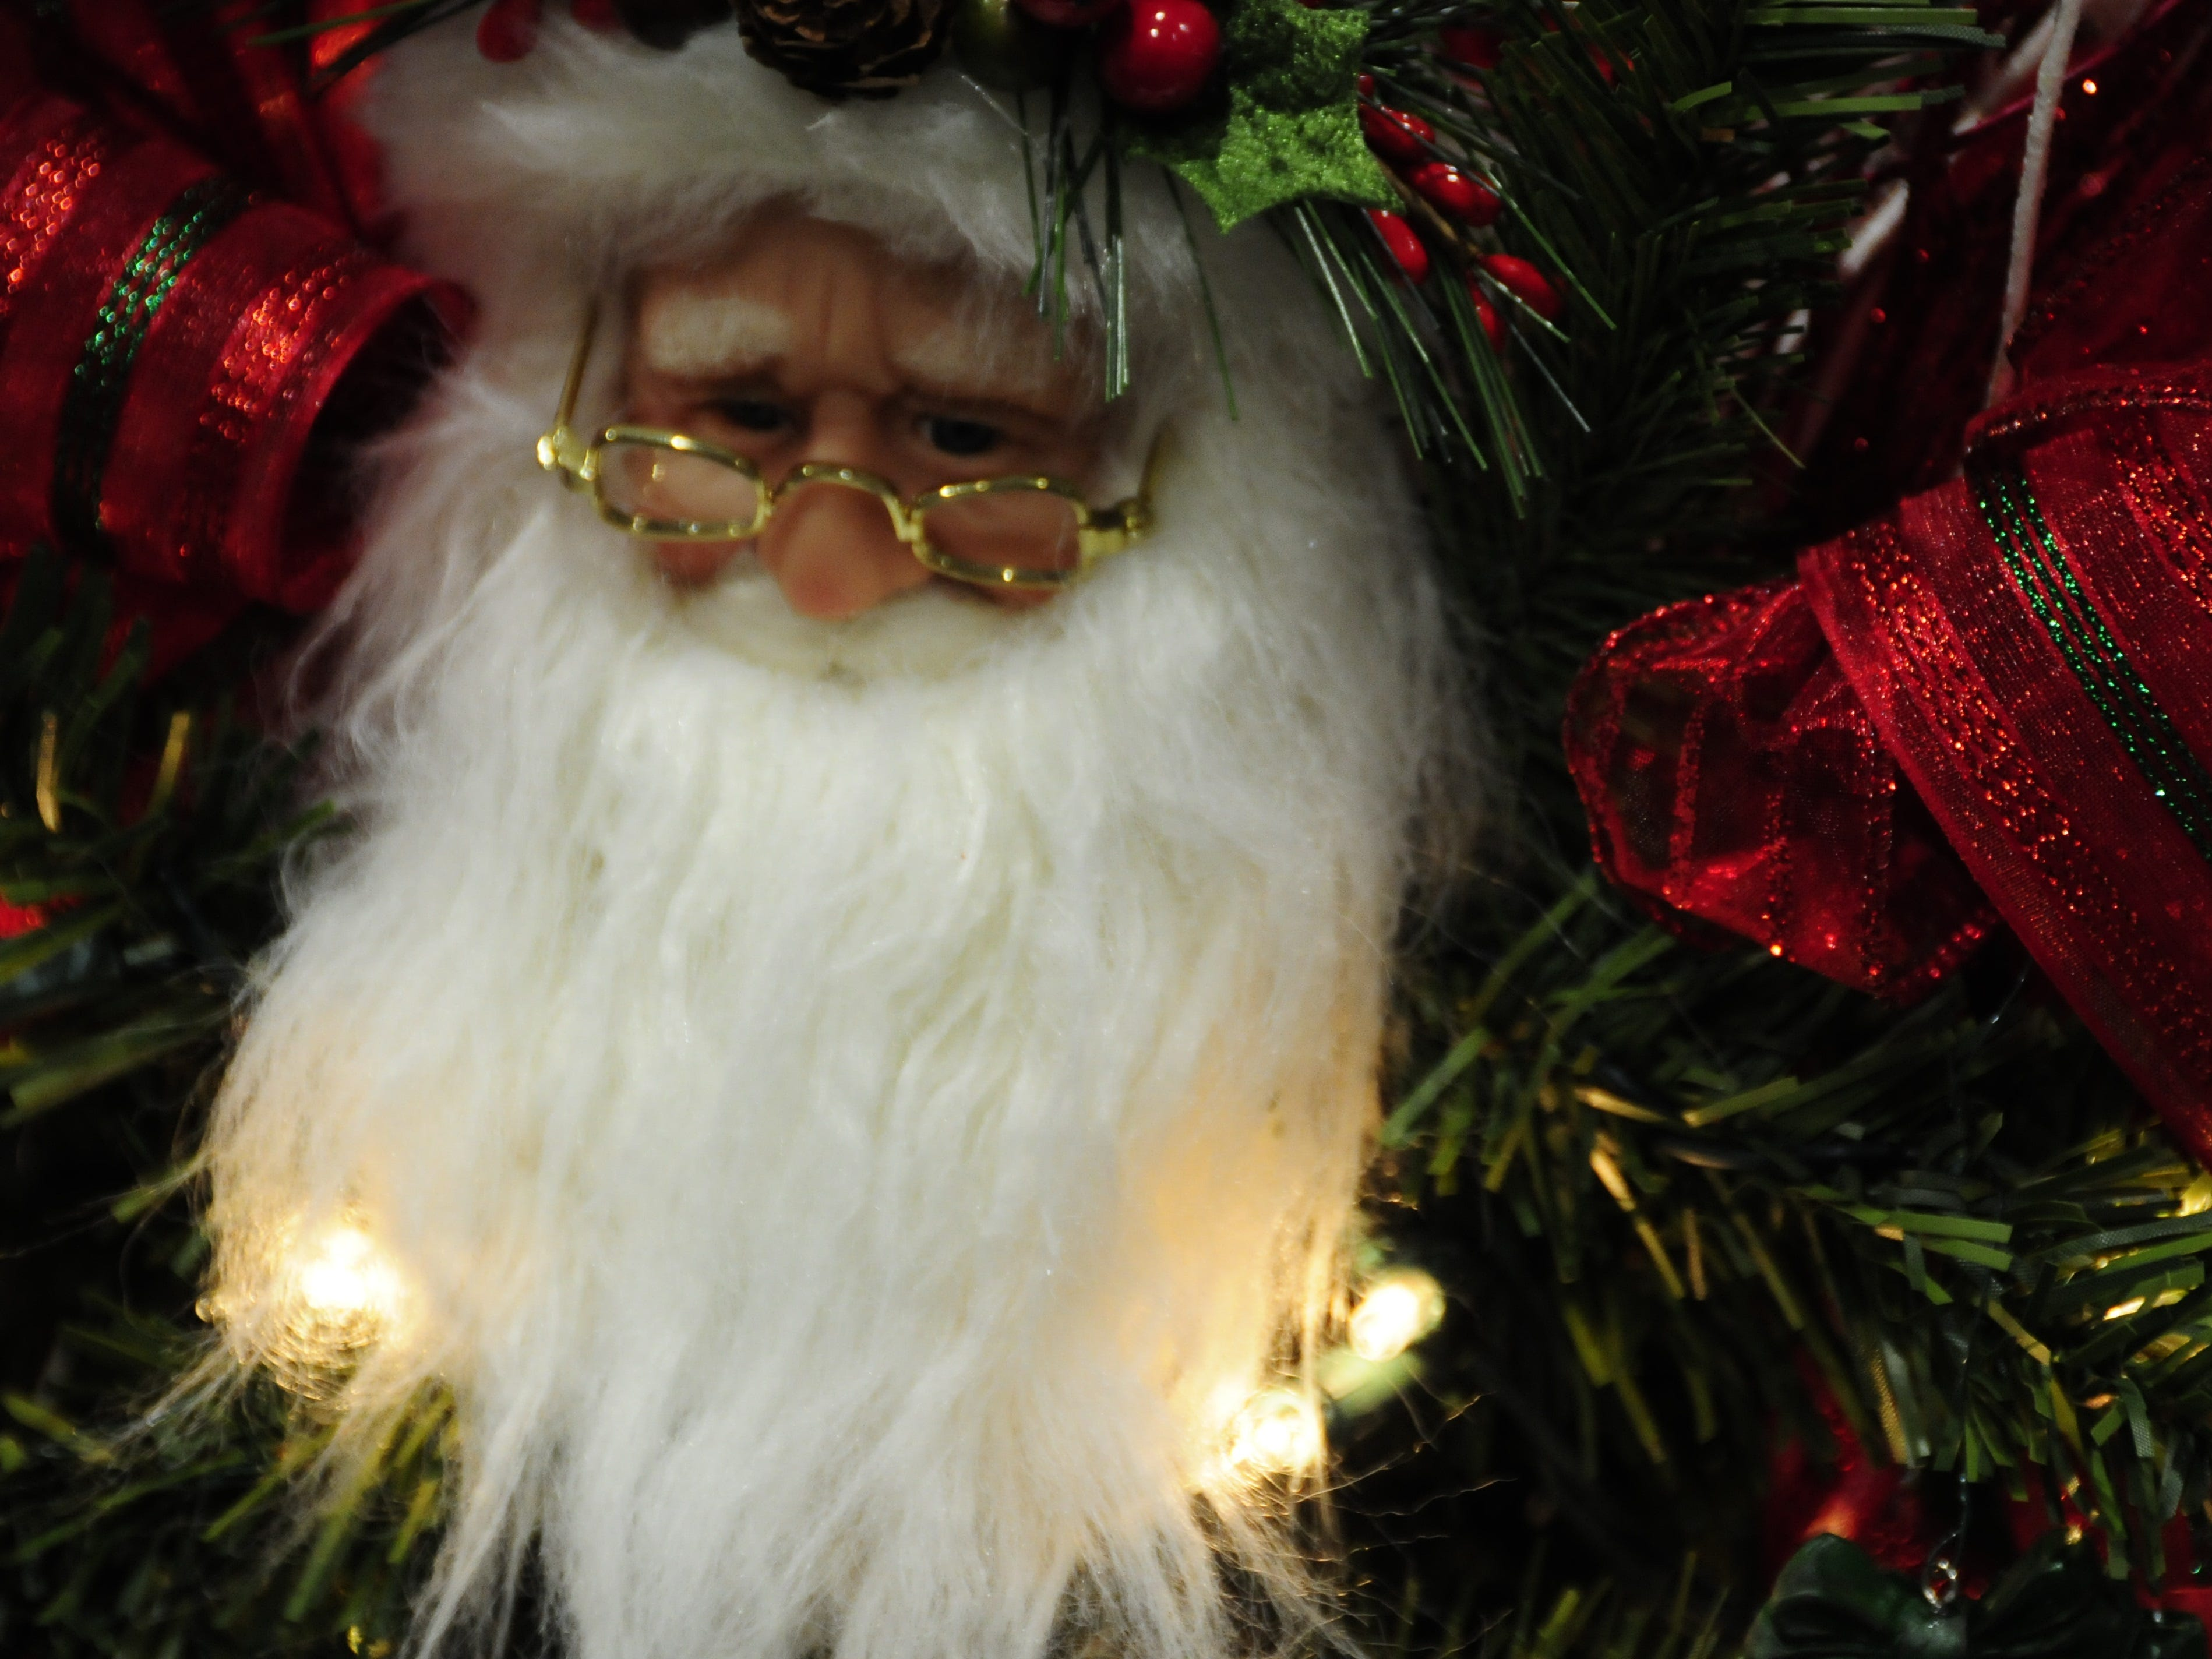 A lifelike Santa figure decorates a tree at the Festival of Trees, Friday through Sunday at the Blue Water Convention Center.